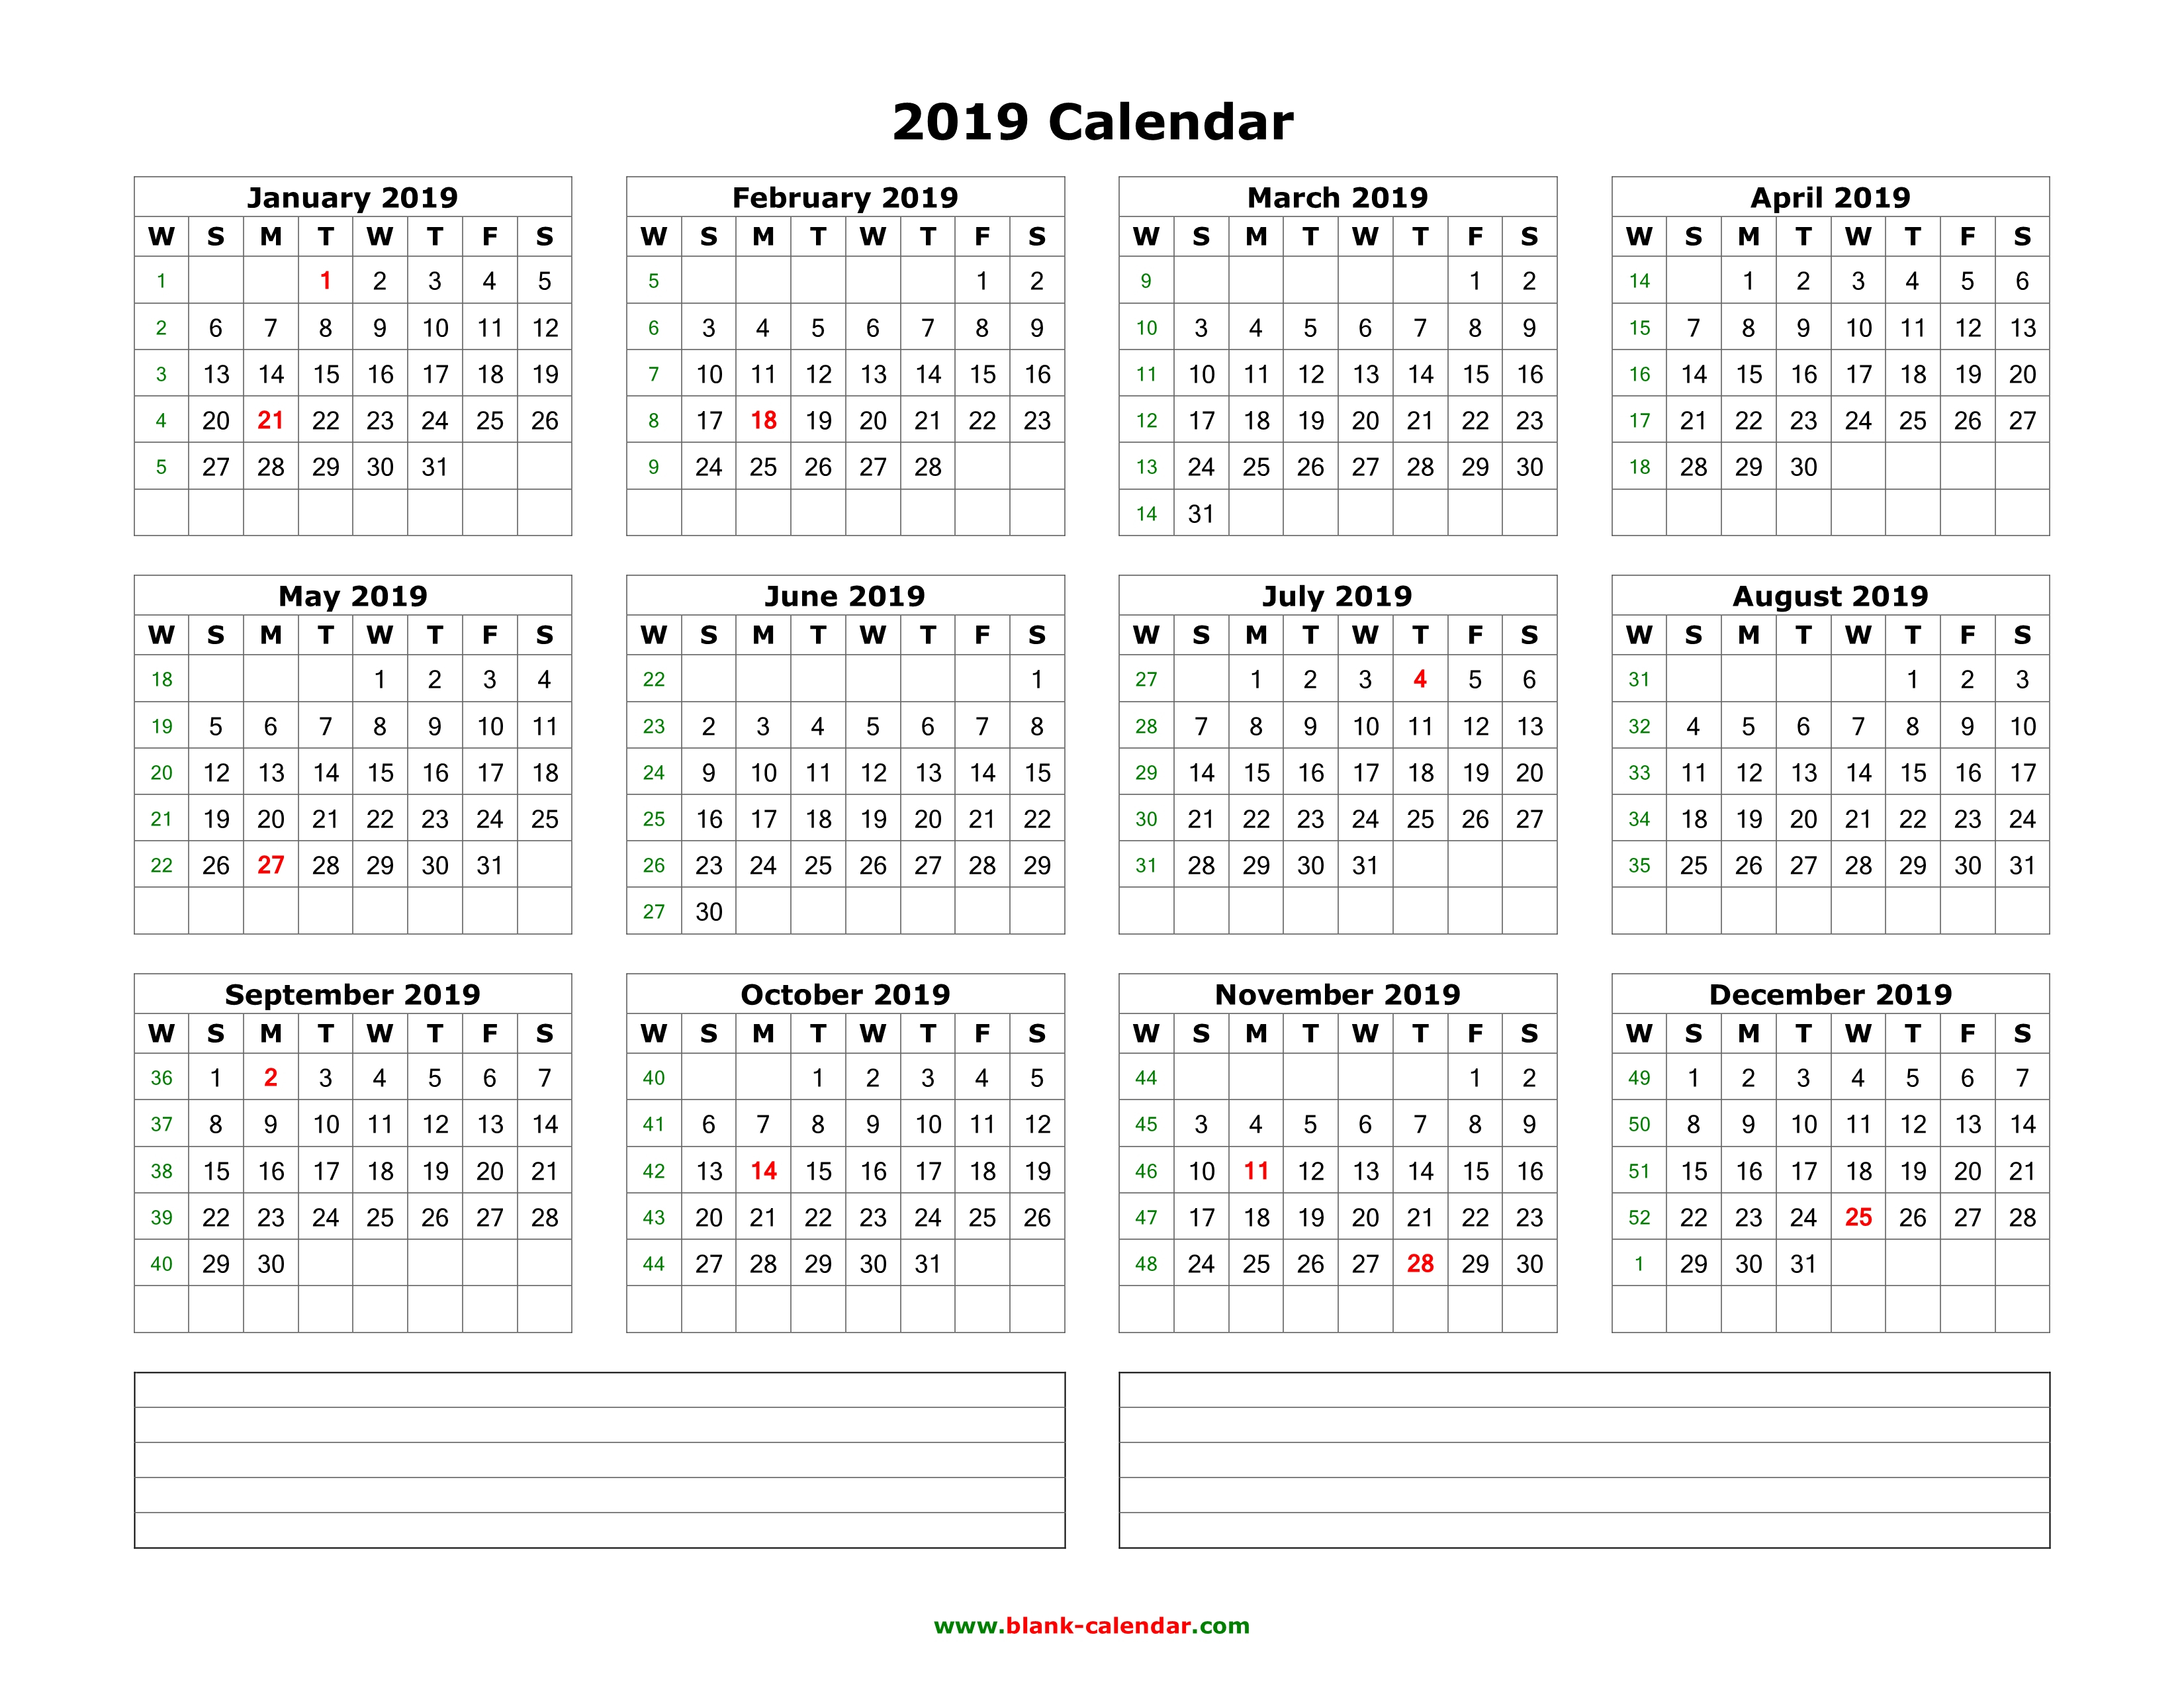 Download Blank Calendar 2019 With Space For Notes (12 Months On One pertaining to Monthly Calendar Templates 12 Months